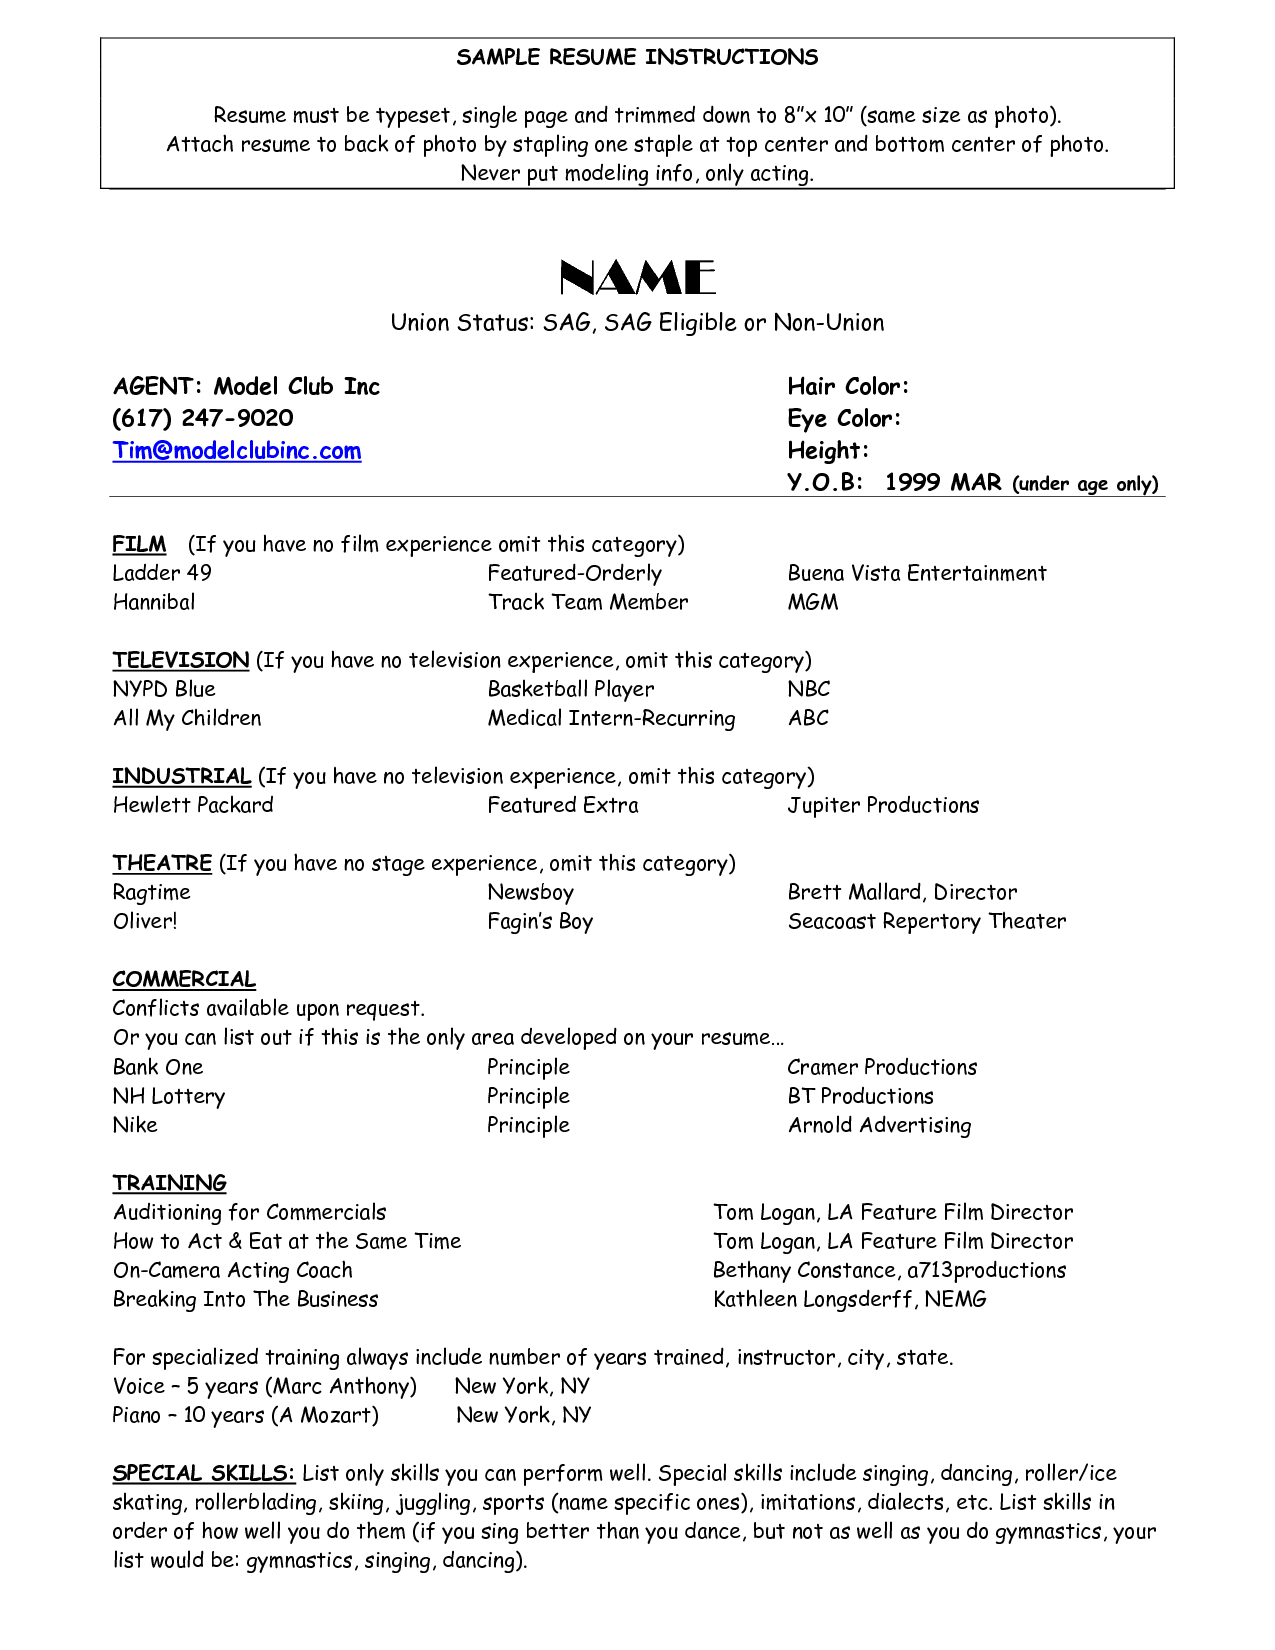 Acting Resume Beginner Resume For Child Actor  Scope Of Work Template  Acting Resumes .